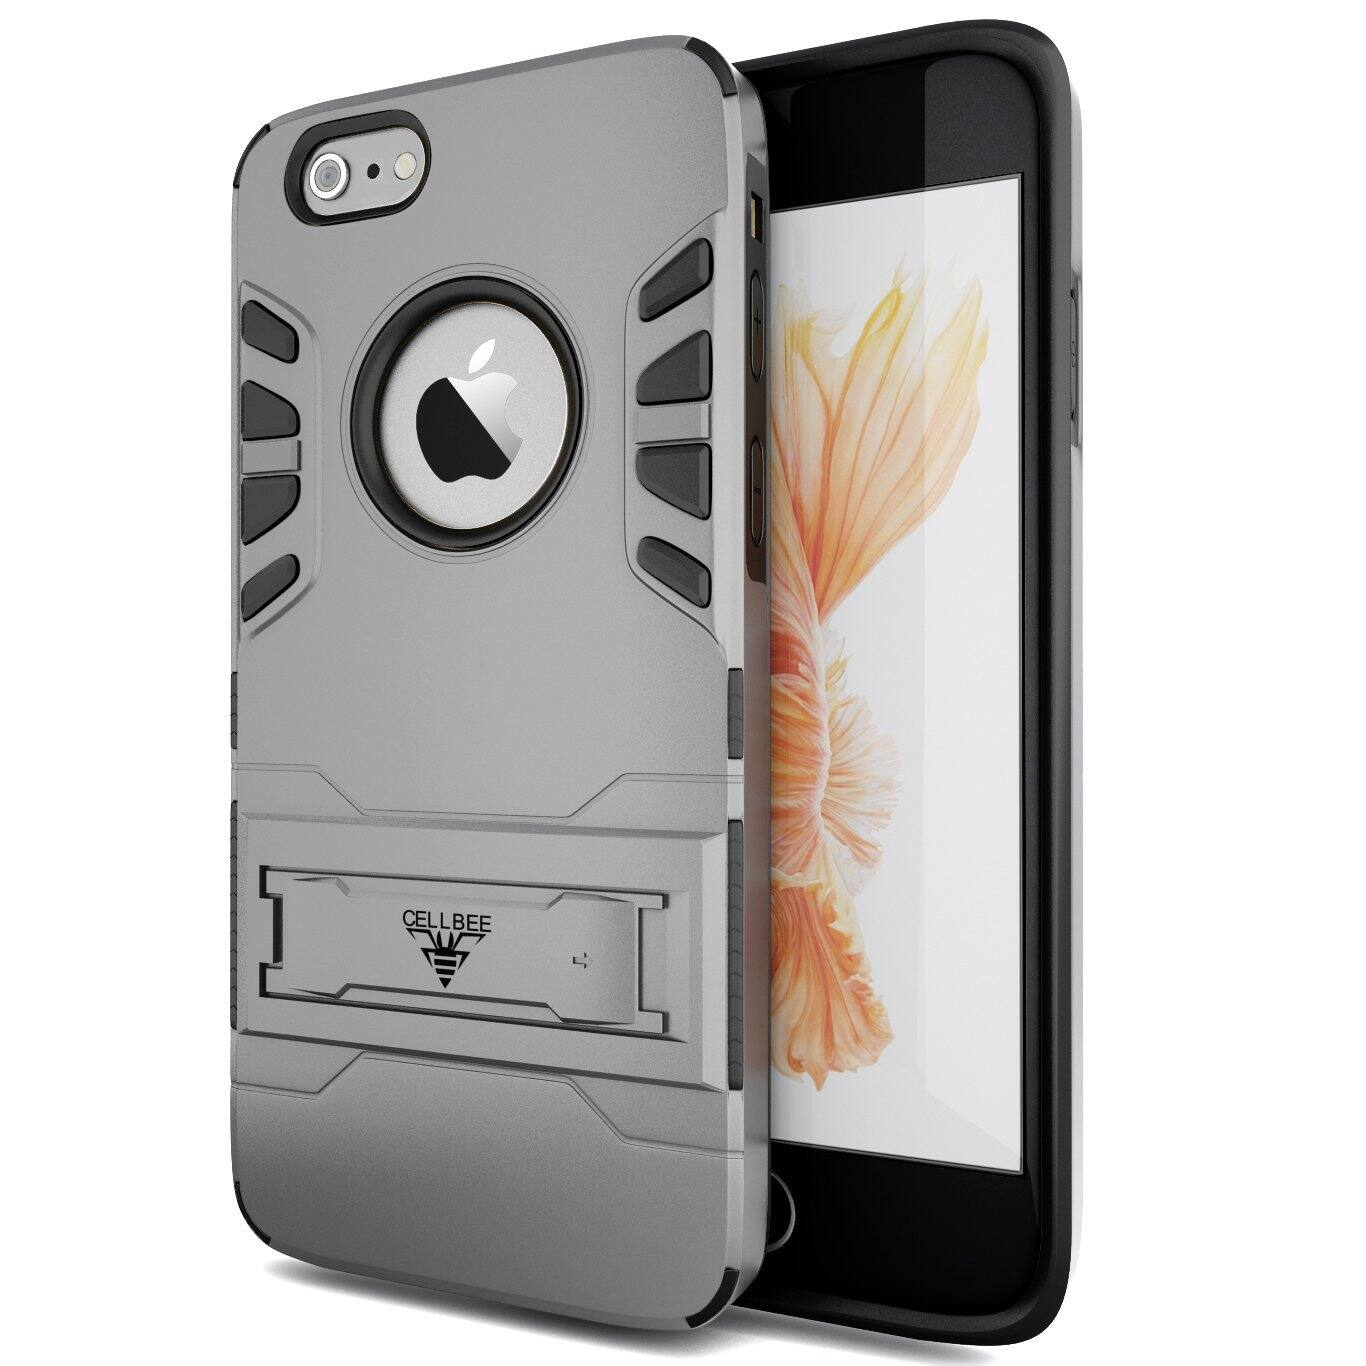 60% OFF iPhone 6s Heavy Duty Case+Holster Combo ONLY $4.99 AC @Amazon Prime FS